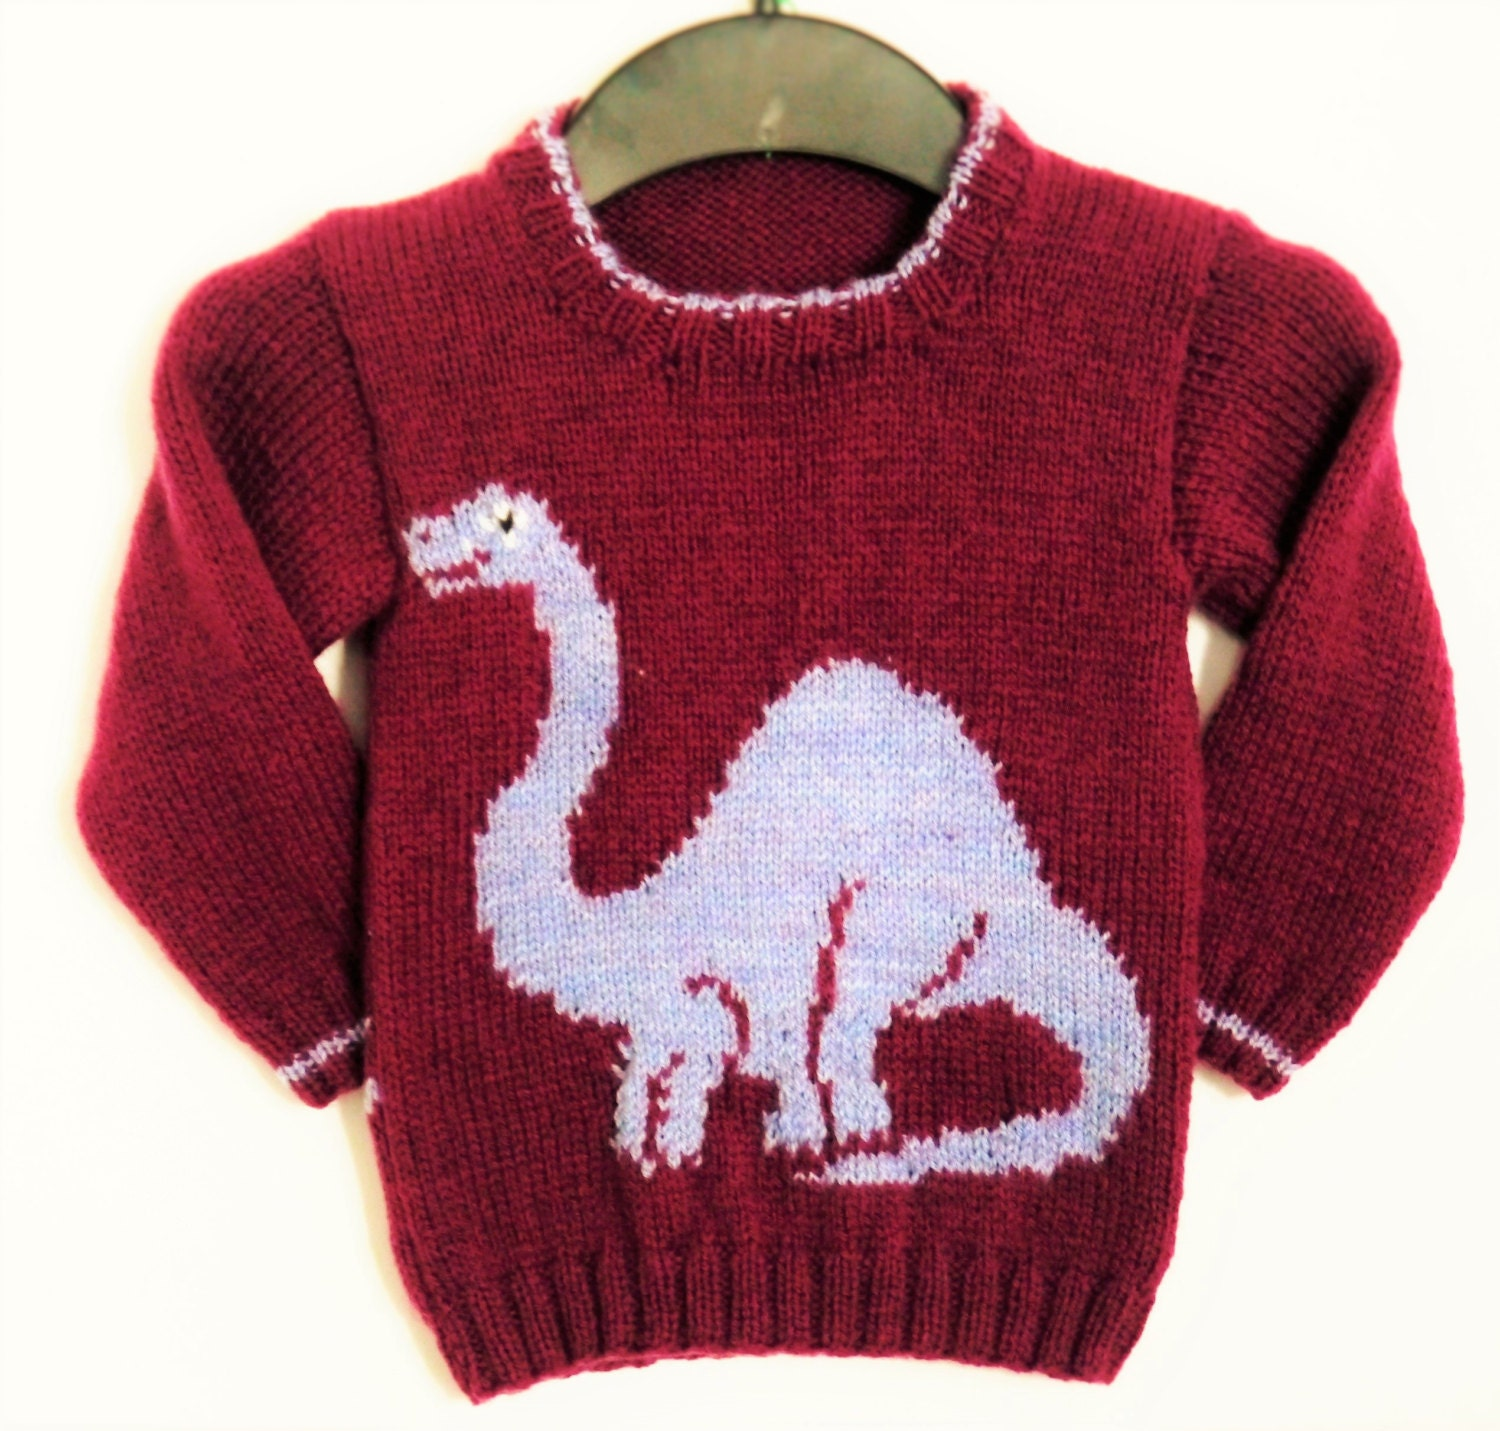 Knitting Pattern for Sweater with Dinosaur, Jumper Knitting Pattern ...